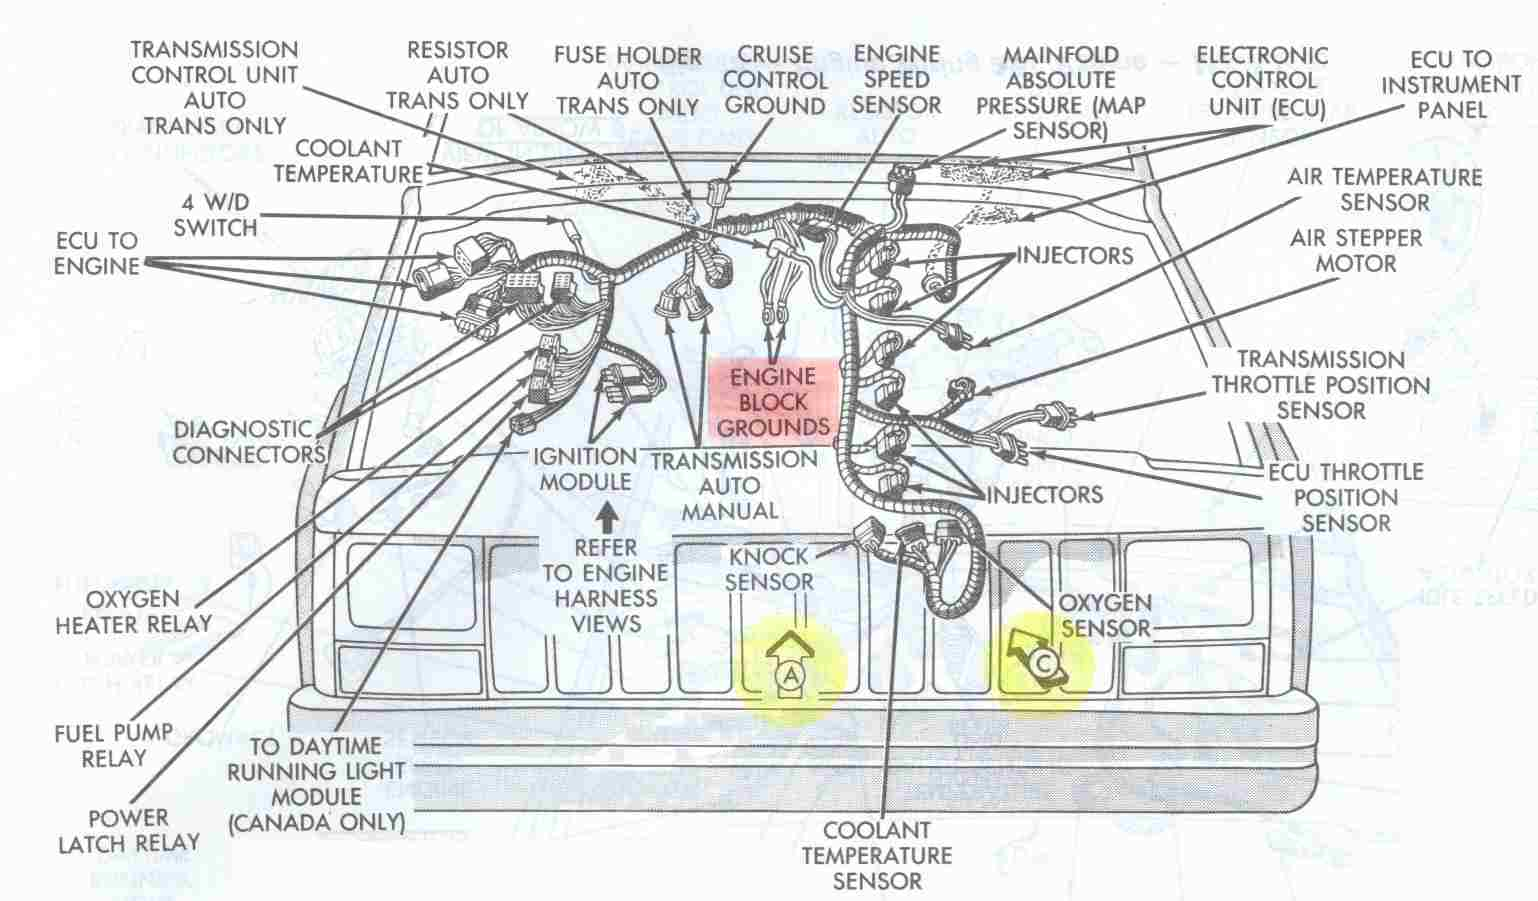 Electrical_Engine_Ground_Points_Overview jeep cherokee electrical diagnosing erratic behavior of engine Wiring Harness Diagram at panicattacktreatment.co